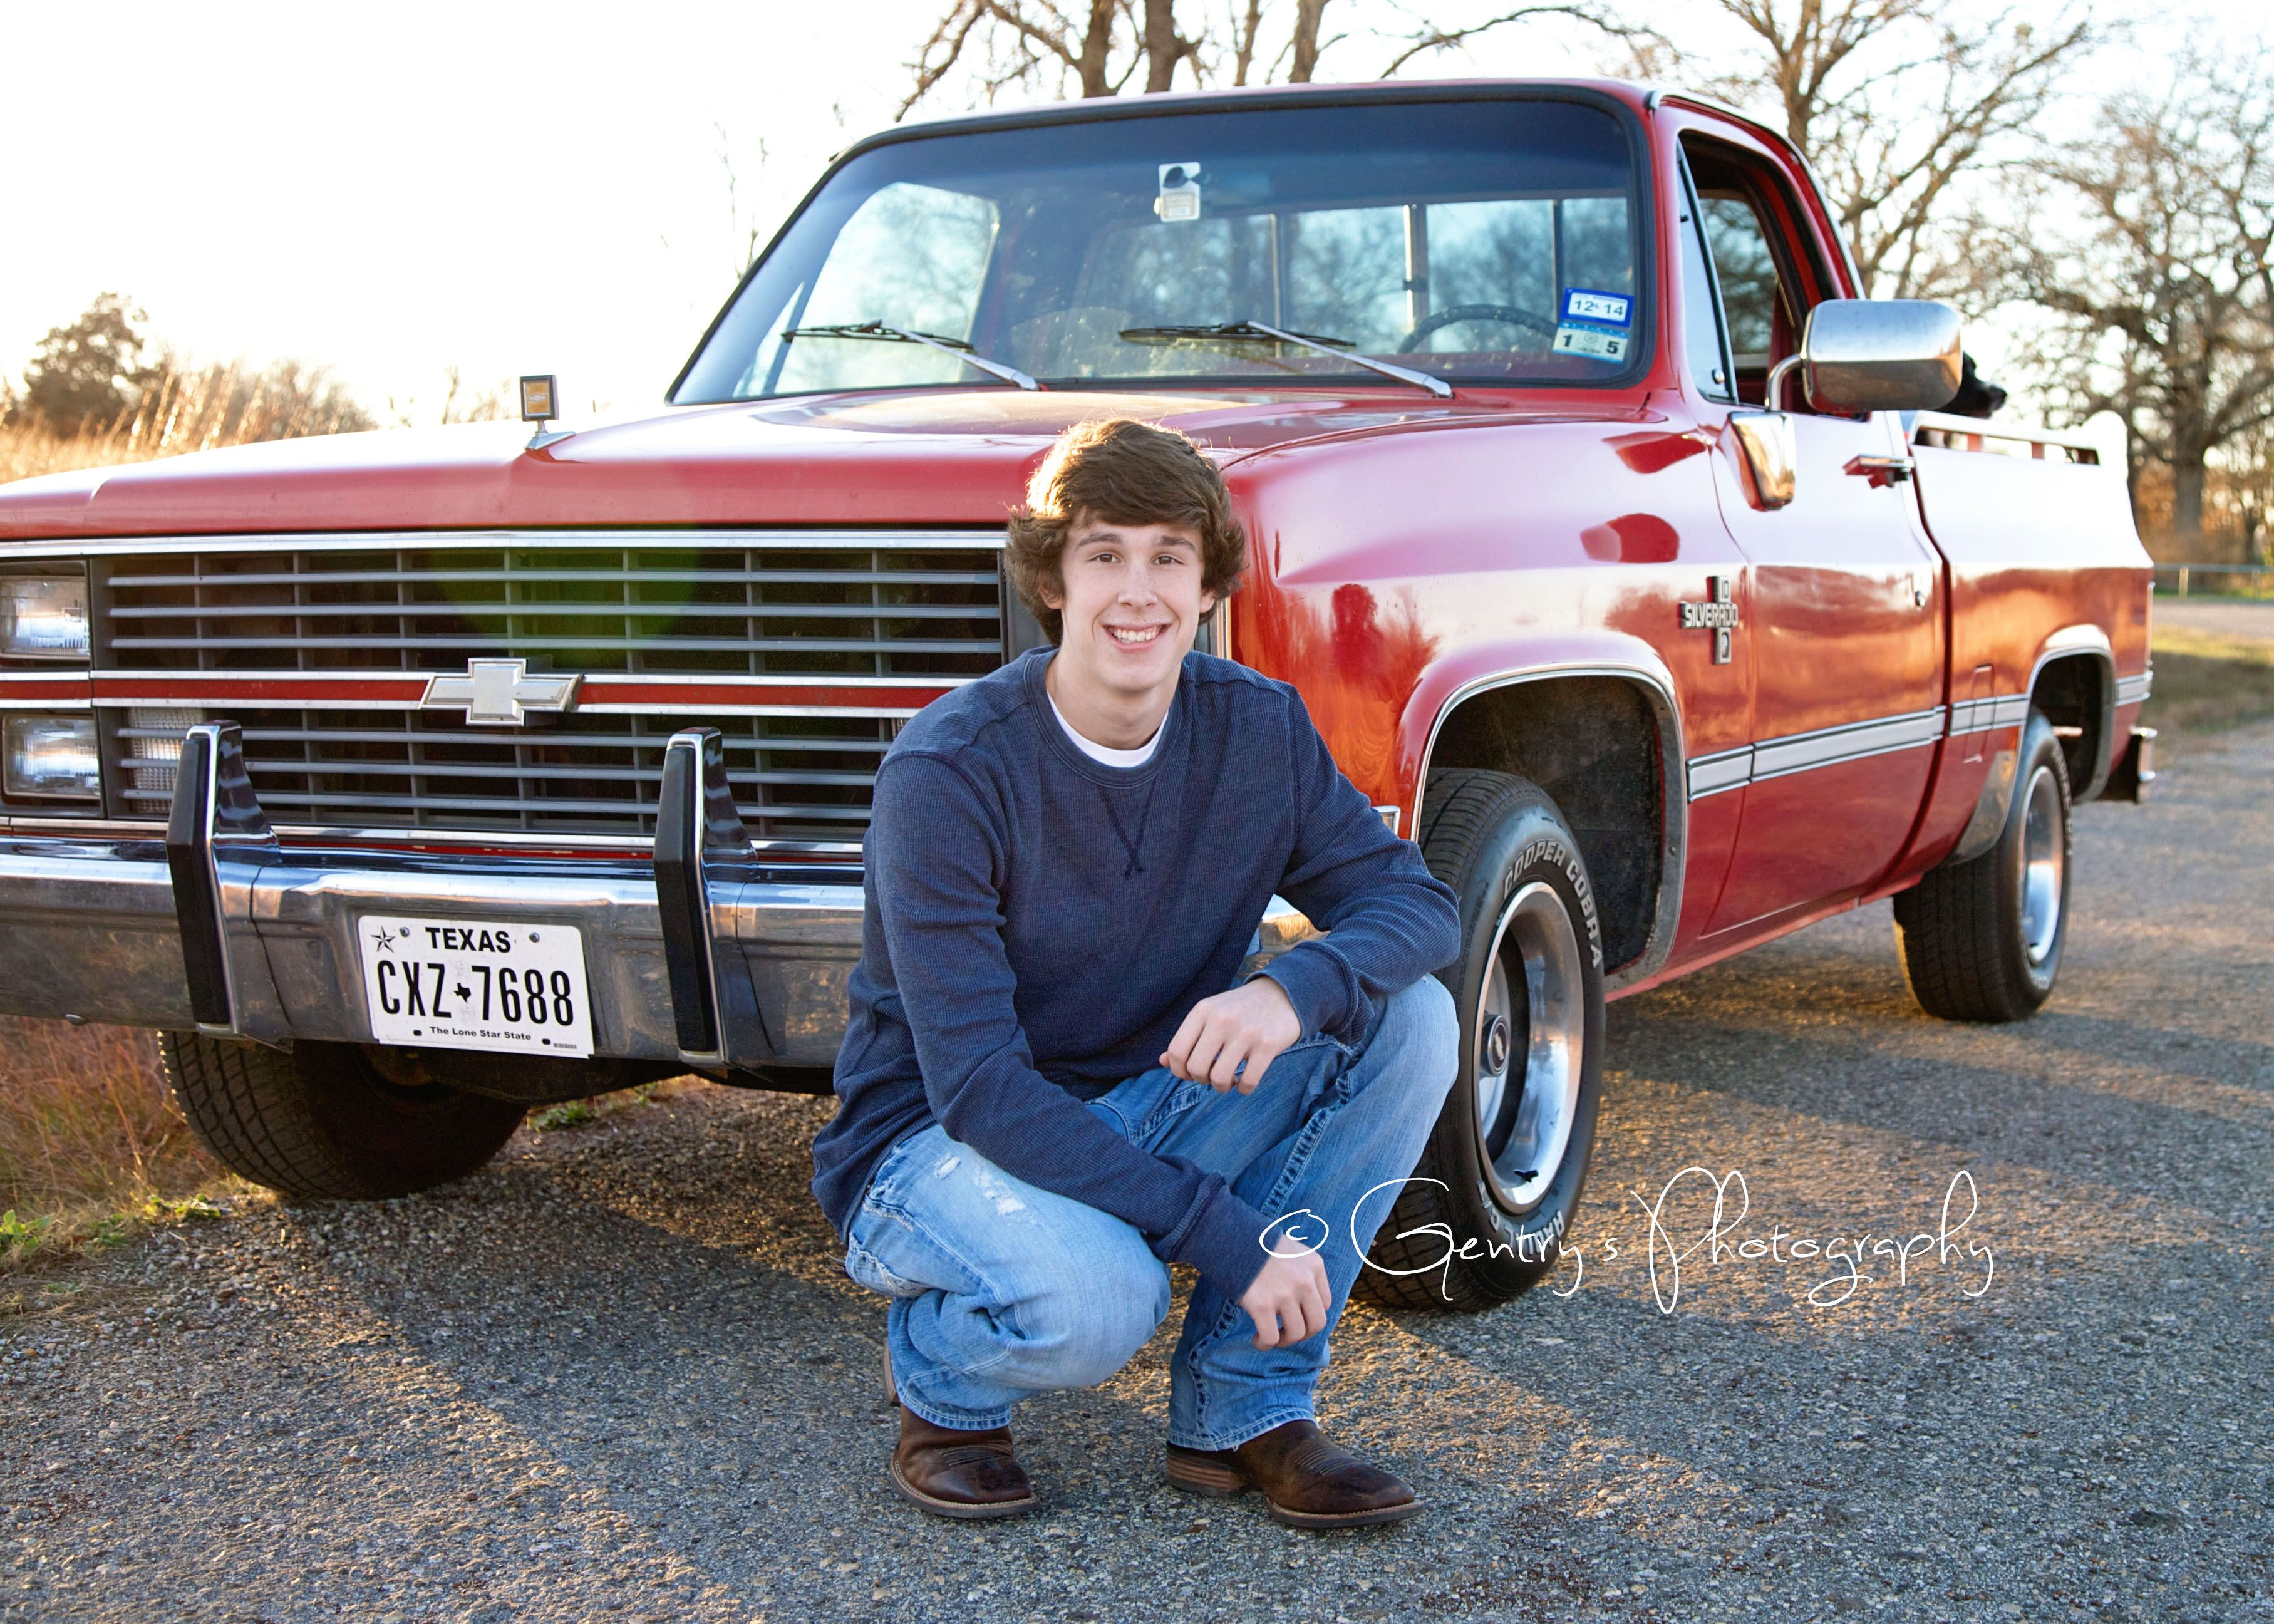 Tyler, Age 16, Boy, Teenager, Guy, Senior, Red Chevy Truck